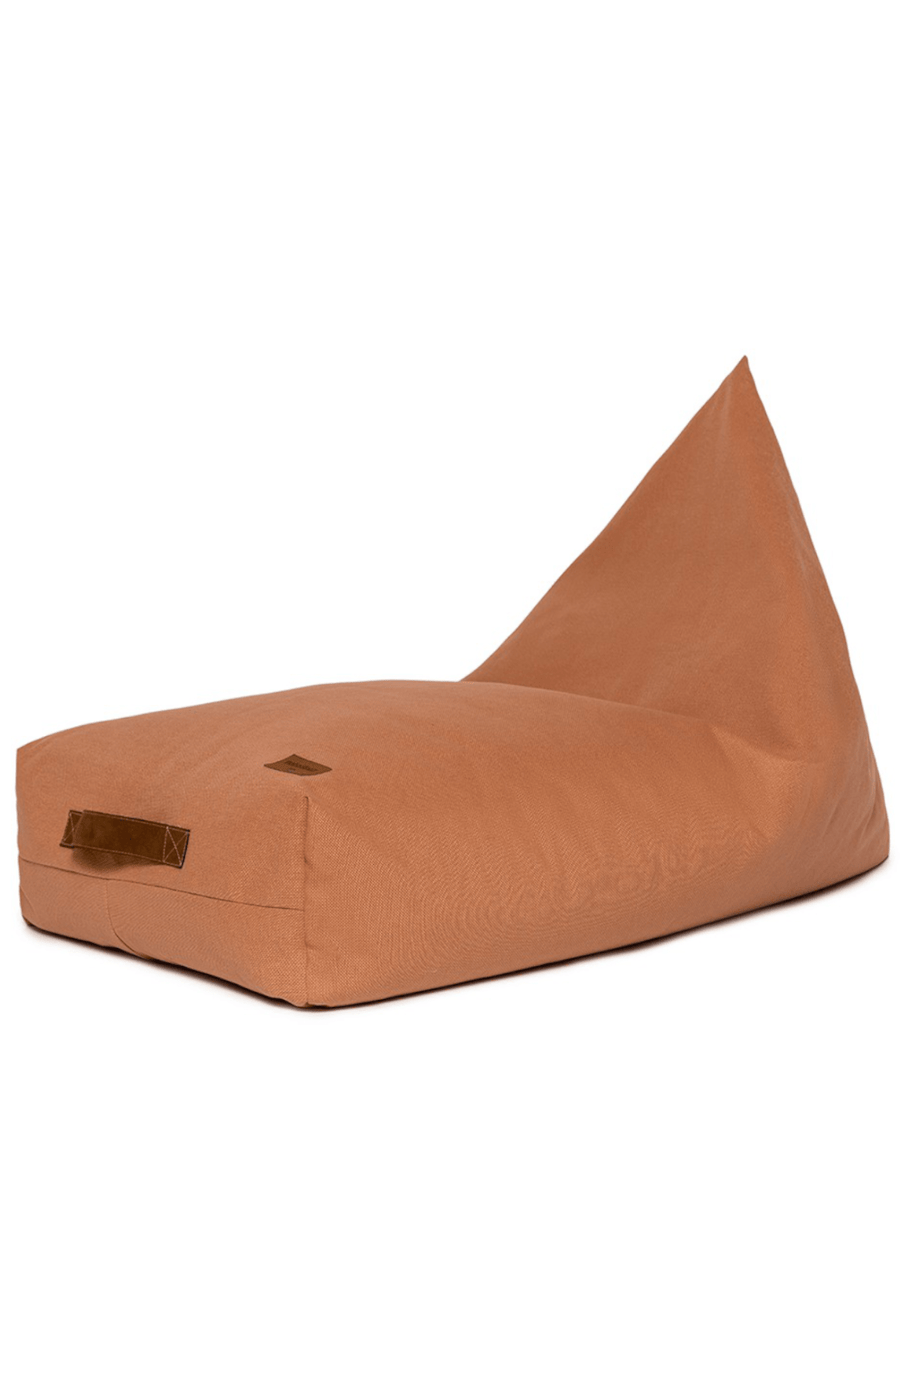 Nobodinoz Pouffe Oasis Bean Bag - Sienna Brown